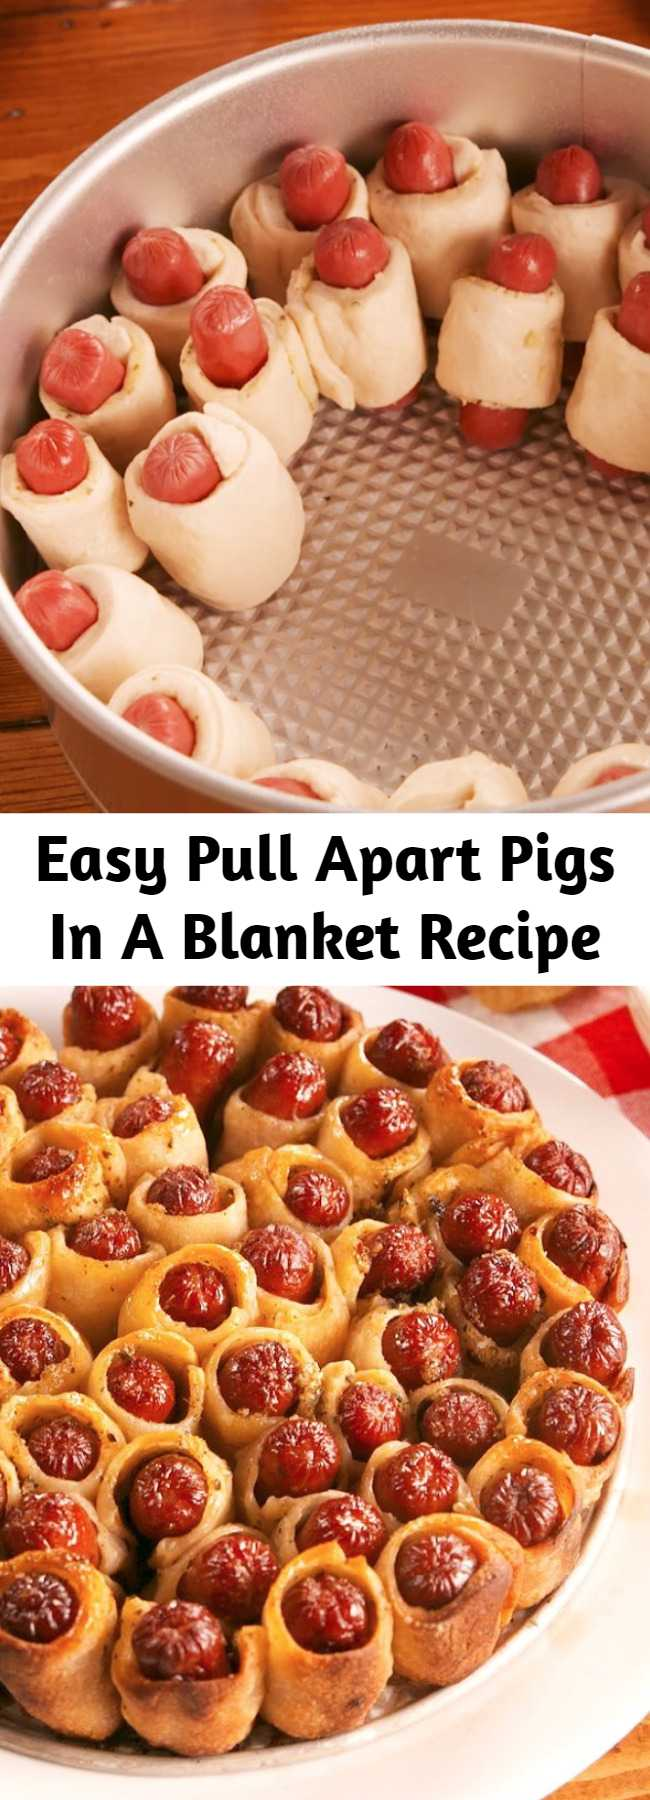 Easy Pull Apart Pigs In A Blanket Recipe - Pull Apart Pigs In A Blanket use the most GENIUS cake pan hack and make the traditional game-day snack so much better! These are positively irresistible. #recipe #easy #easyrecipes #appetizer #party #partyfood #partyideas #appetizers #hotdogs #hacks #lifehacks #baking #bakinghacks